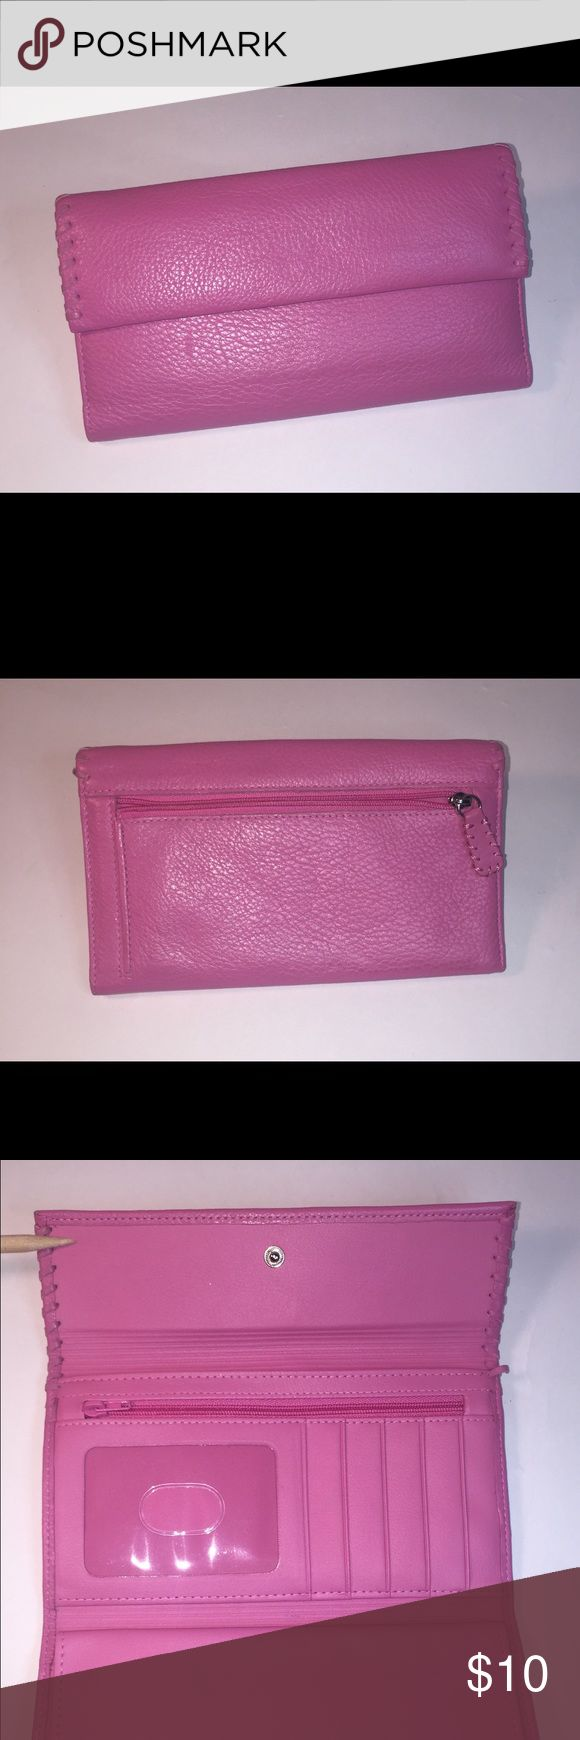 Buxton Wallet with Checkbook Insert Never used, wallet wit 2 zippered compartments, 5 credit card slots, checkbook and pen holder. Bags Wallets